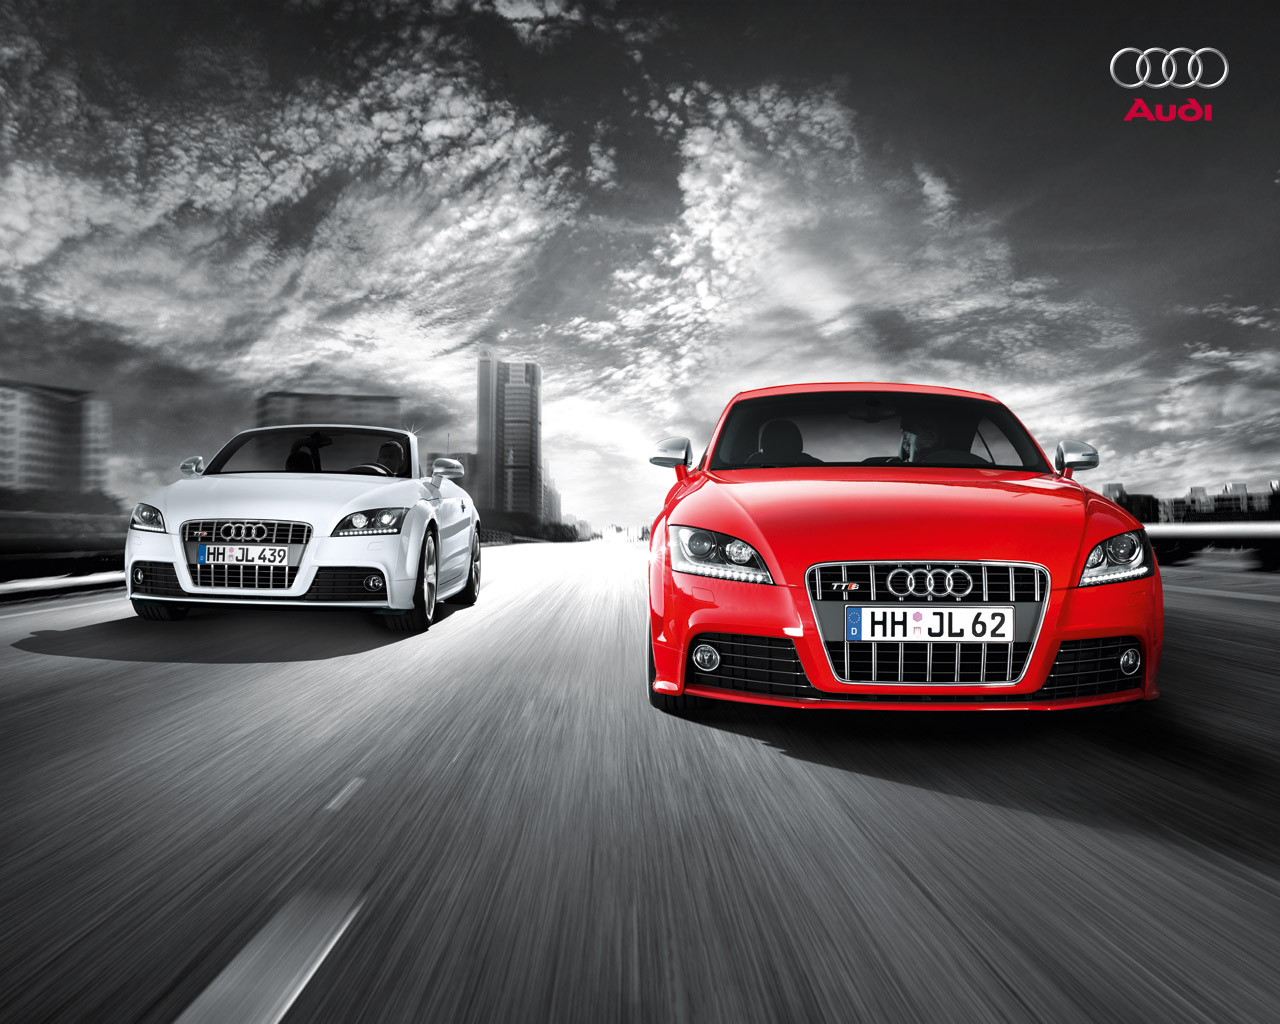 ... 17495 Audi Tt Wallpapers Audi Wallpapers Cars Cool Hd Wallpapers   ...